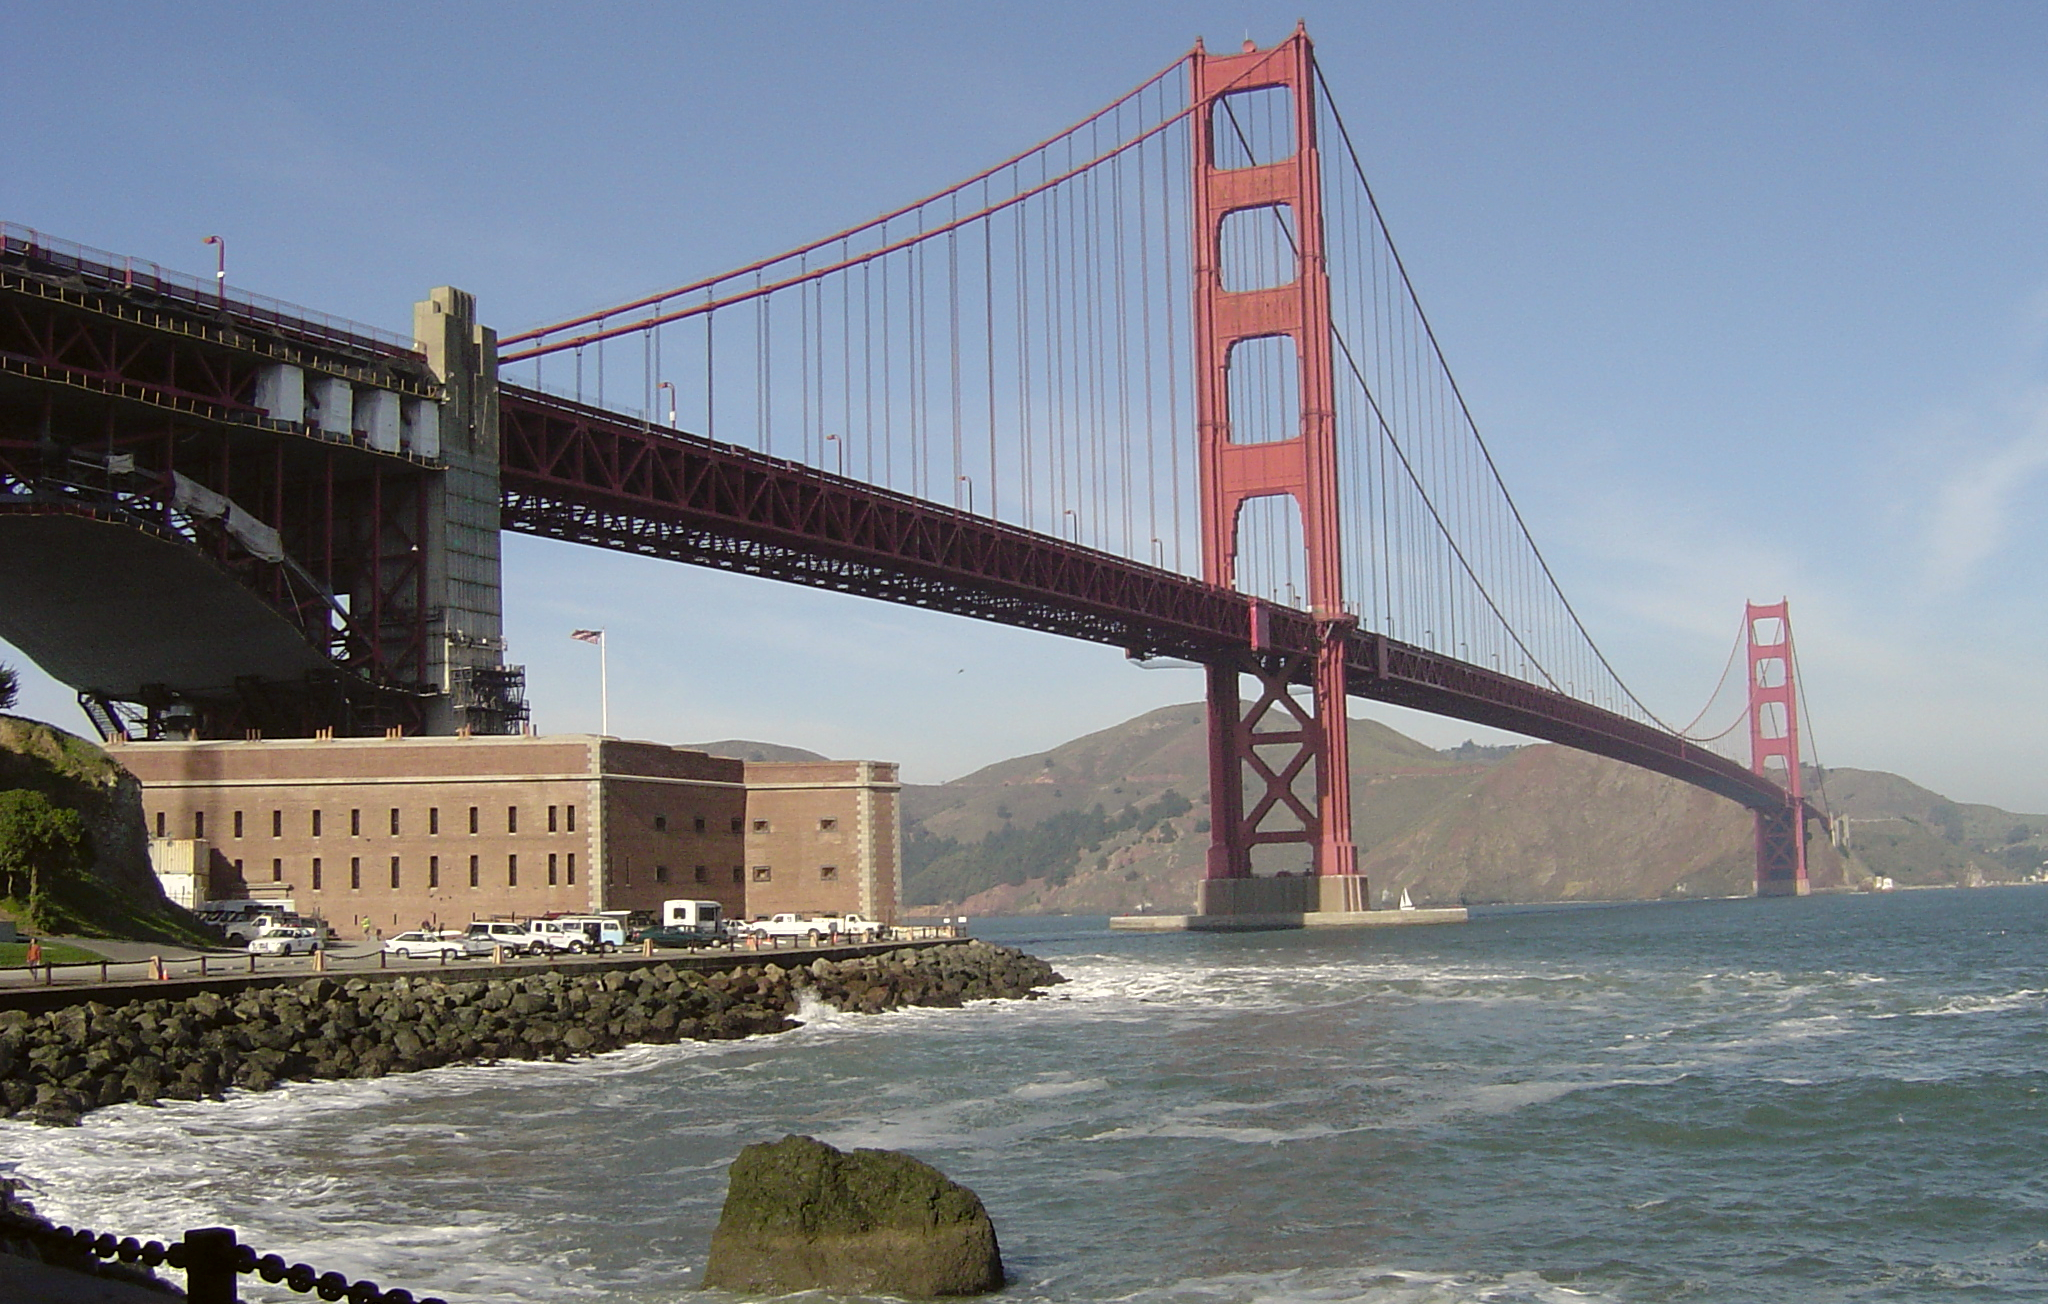 Fort Point affords amazing close-up views of the Golden Gate Bridge.